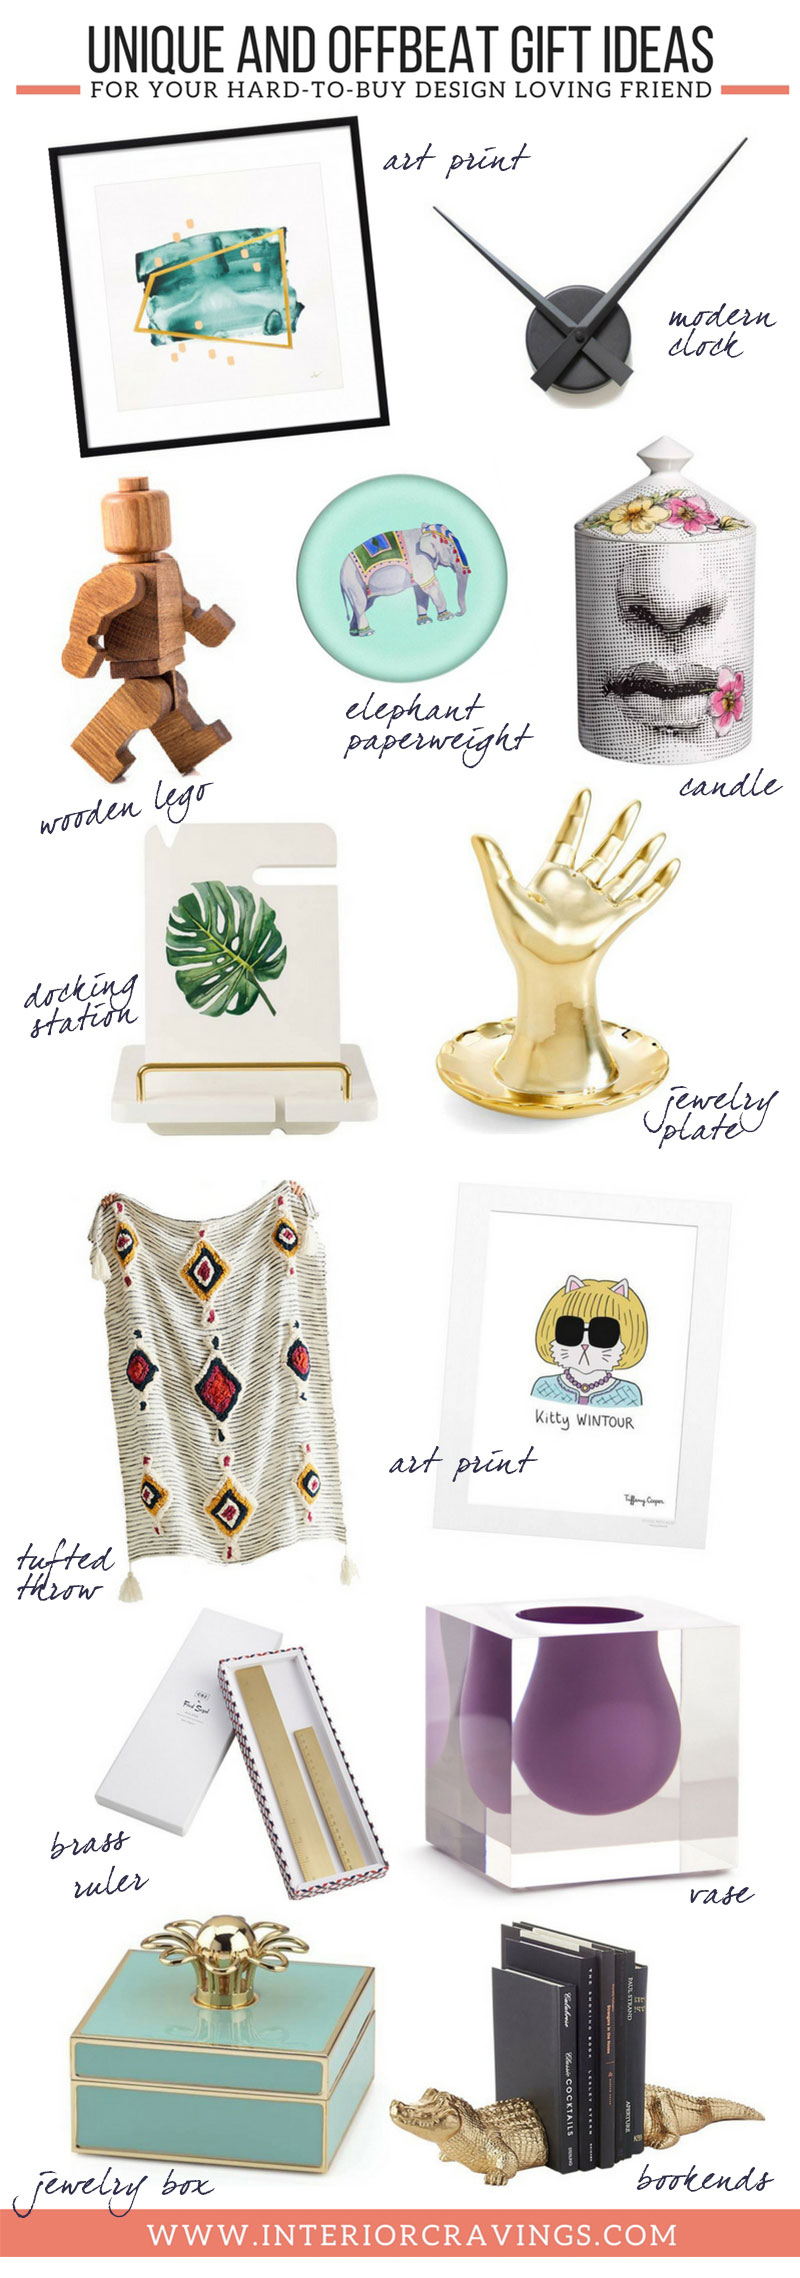 INTERIOR CRAVINGS unique and offbeat gift ideas for hard to buy design loving friends THE GIFT GUIDE all in one